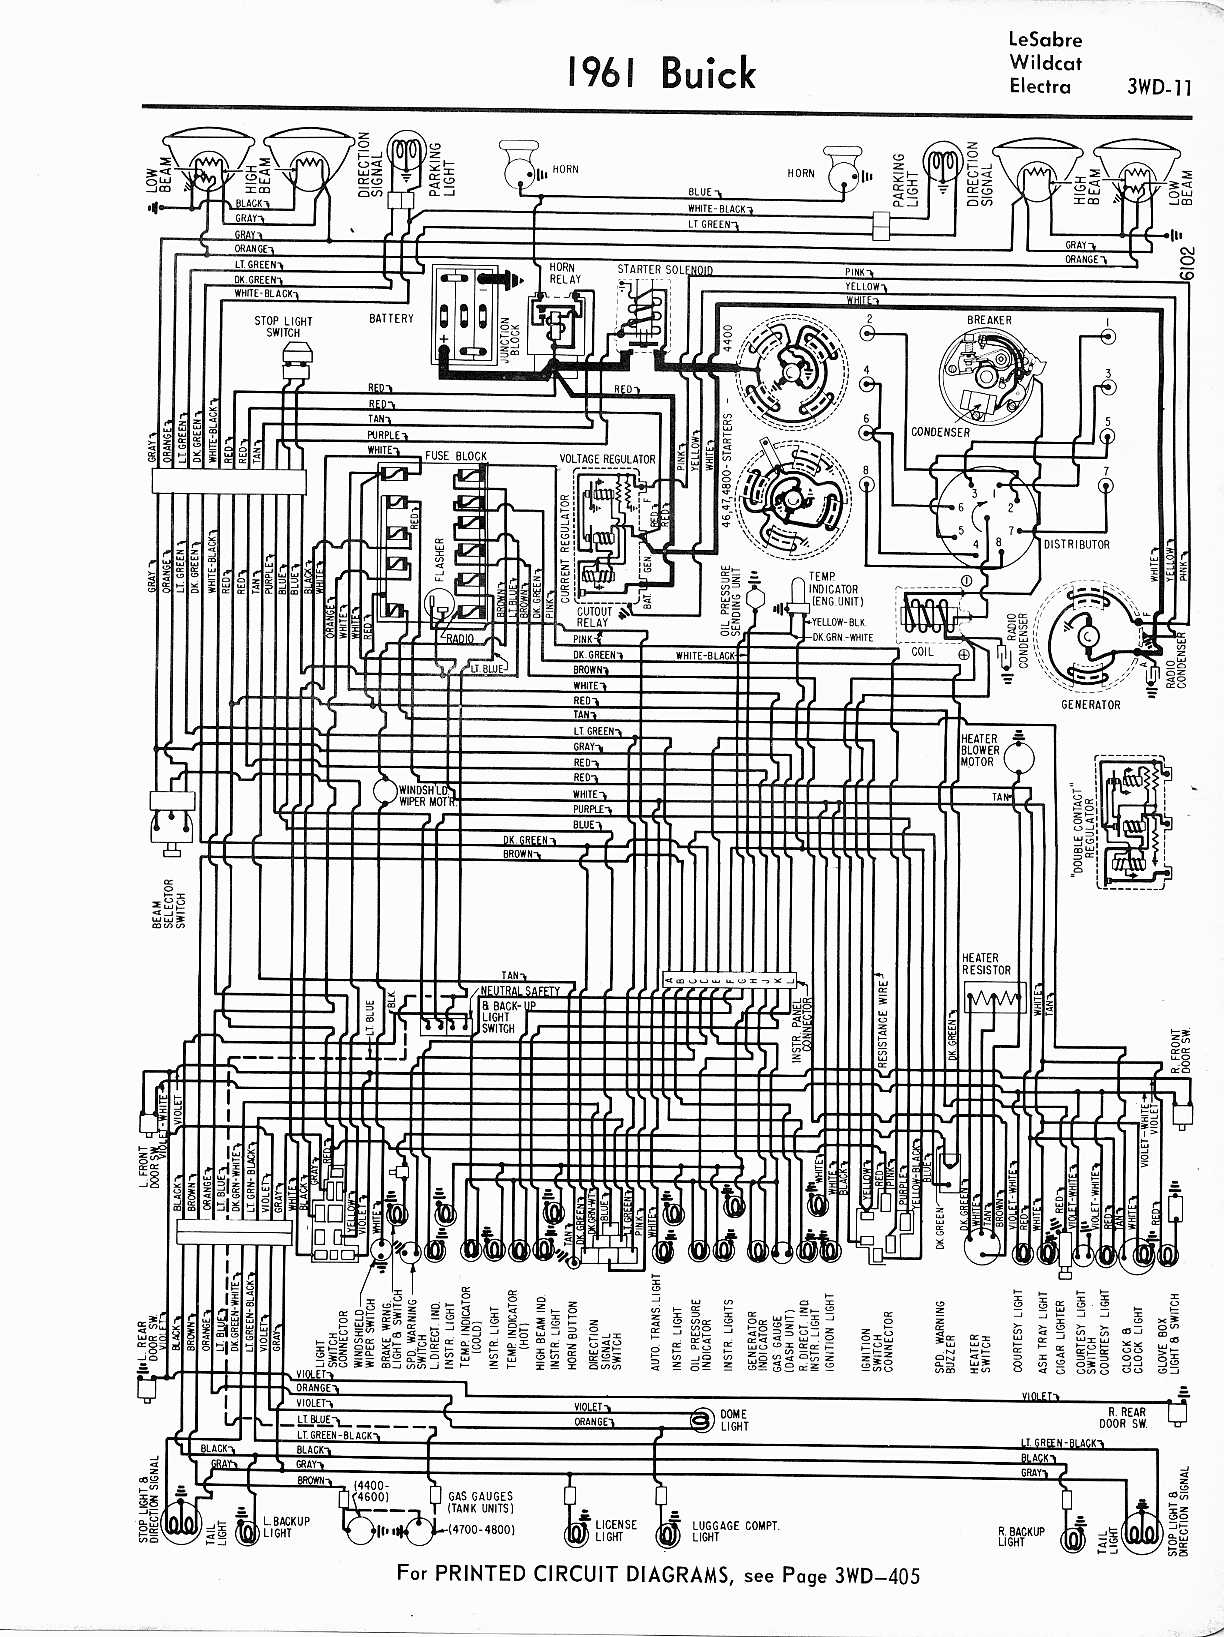 MWireBuic65_3WD 011 wiring diagram for 2000 buick lesabre the wiring diagram 2004 buick regal fuse box diagram at fashall.co